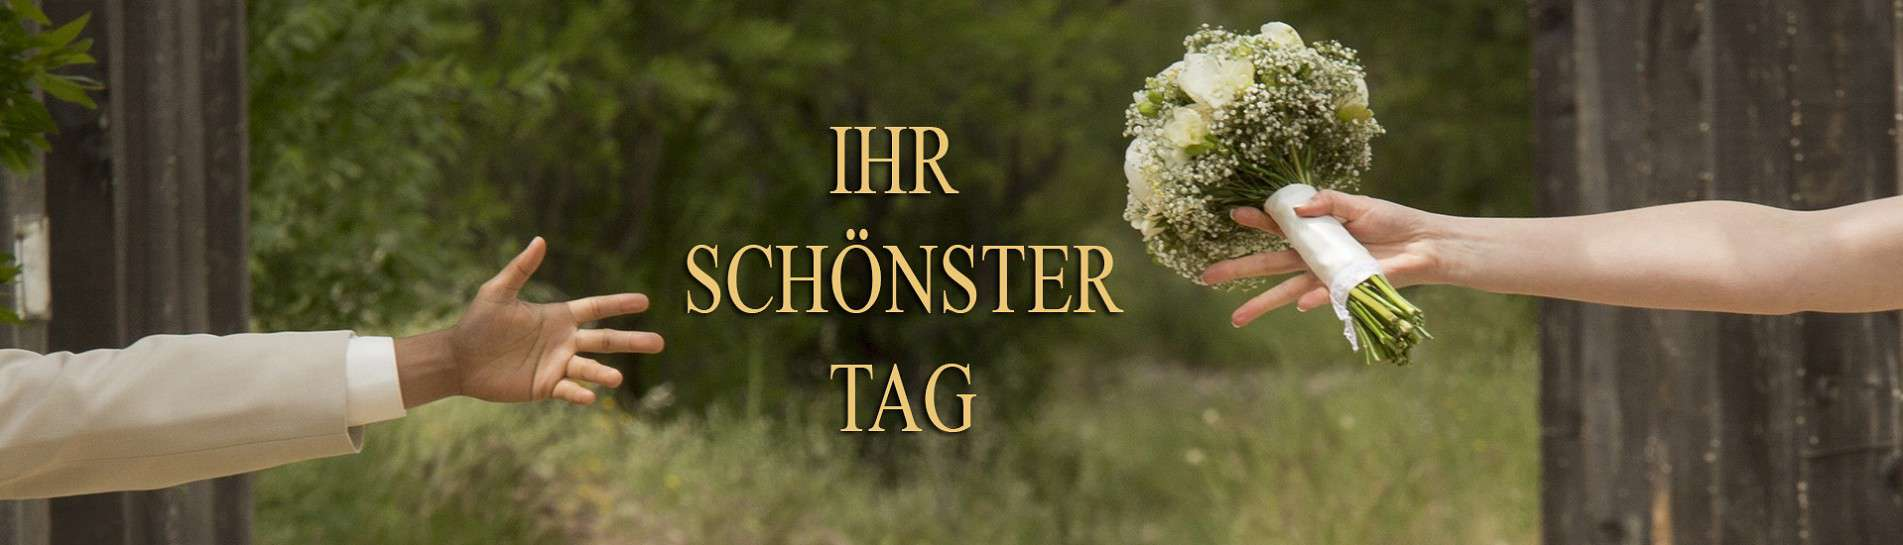 Schoenster-Tag_farbig